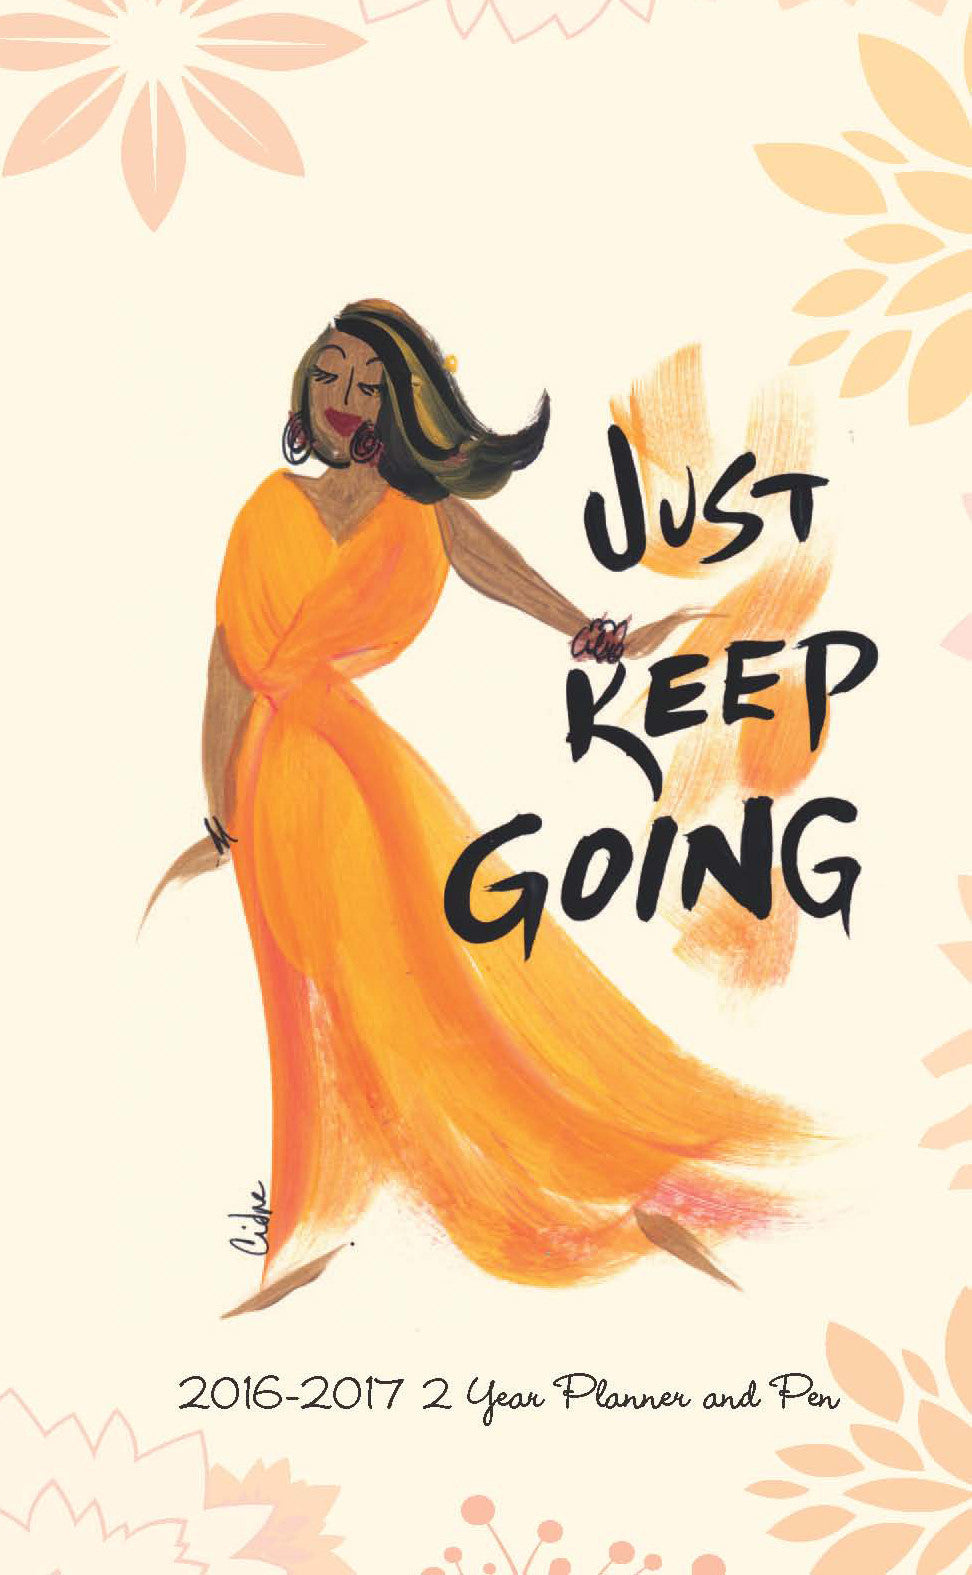 Just Keep Going 2016-2017 African American Checkbook Planner by Cidne Wallace